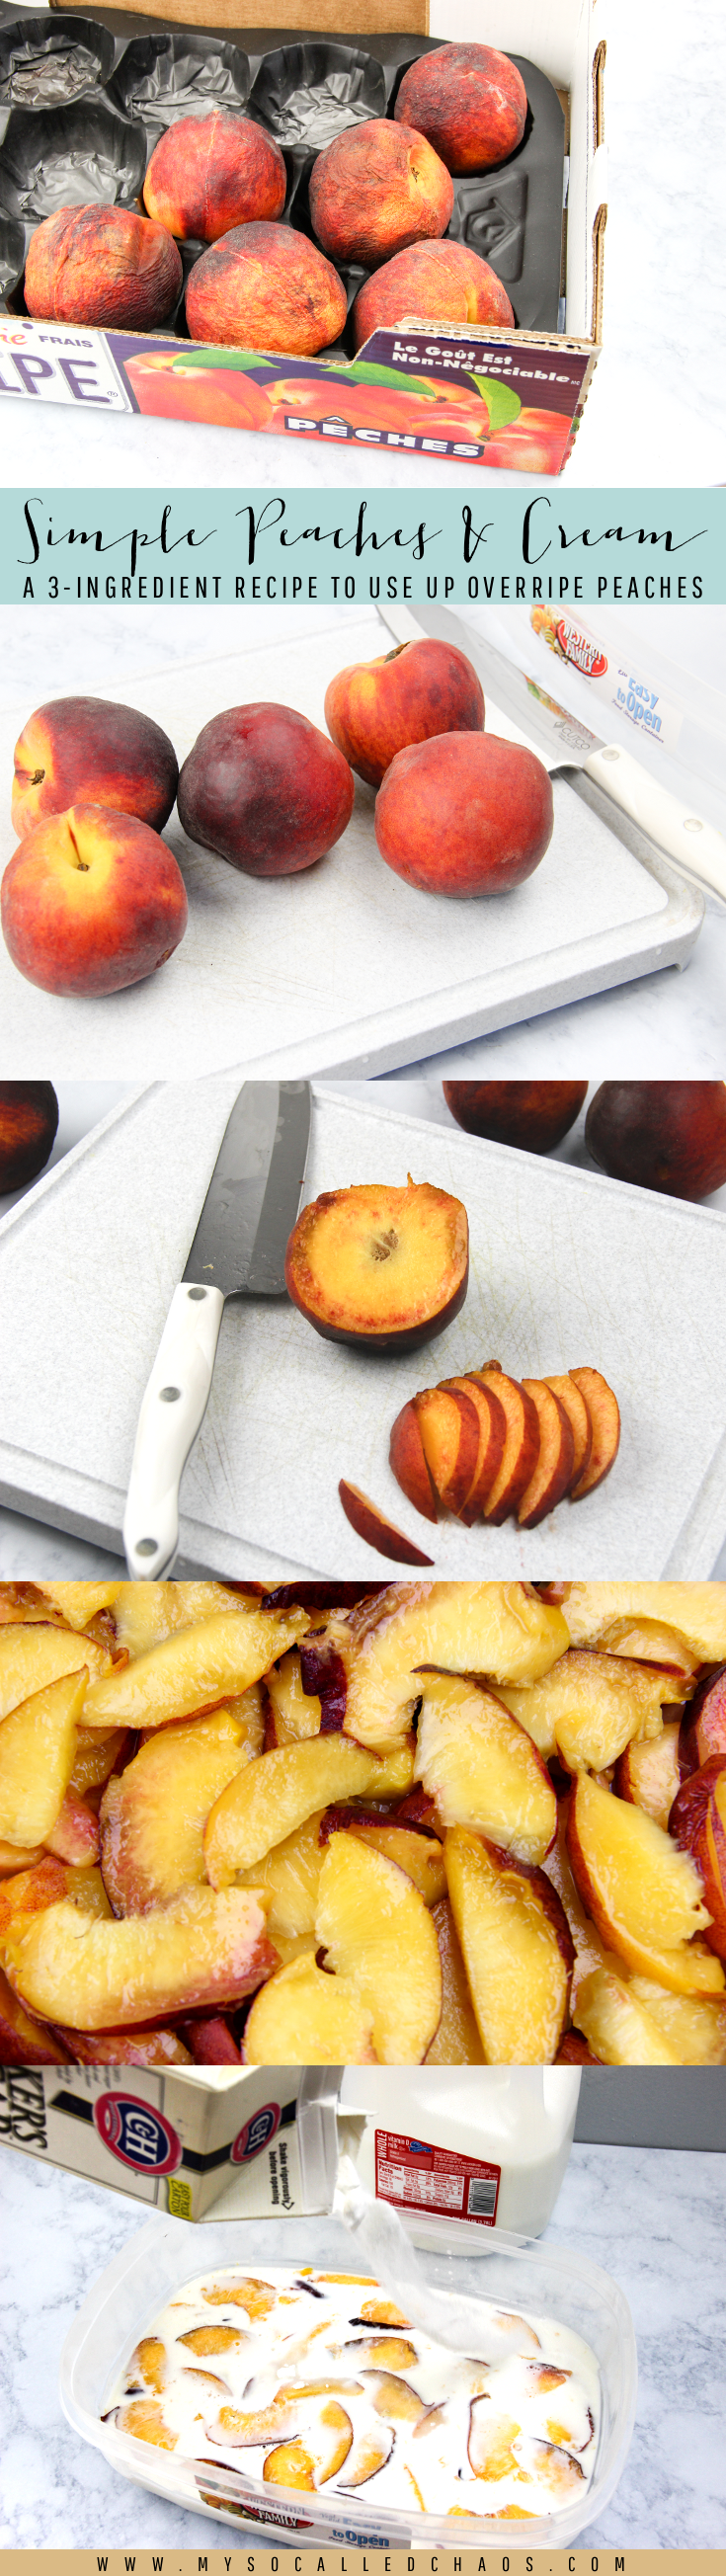 Simple Peaches & Cream Recipe to Use Up Overripe Peaches